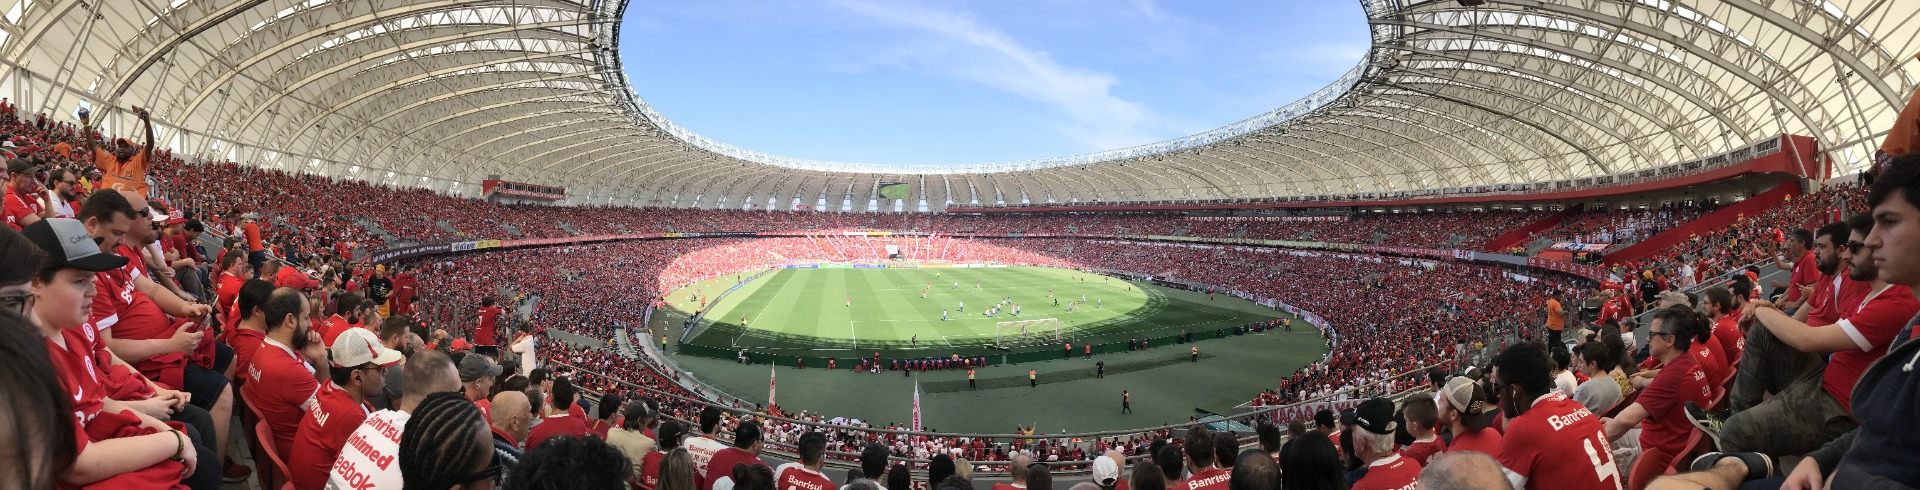 football stadion with crowd